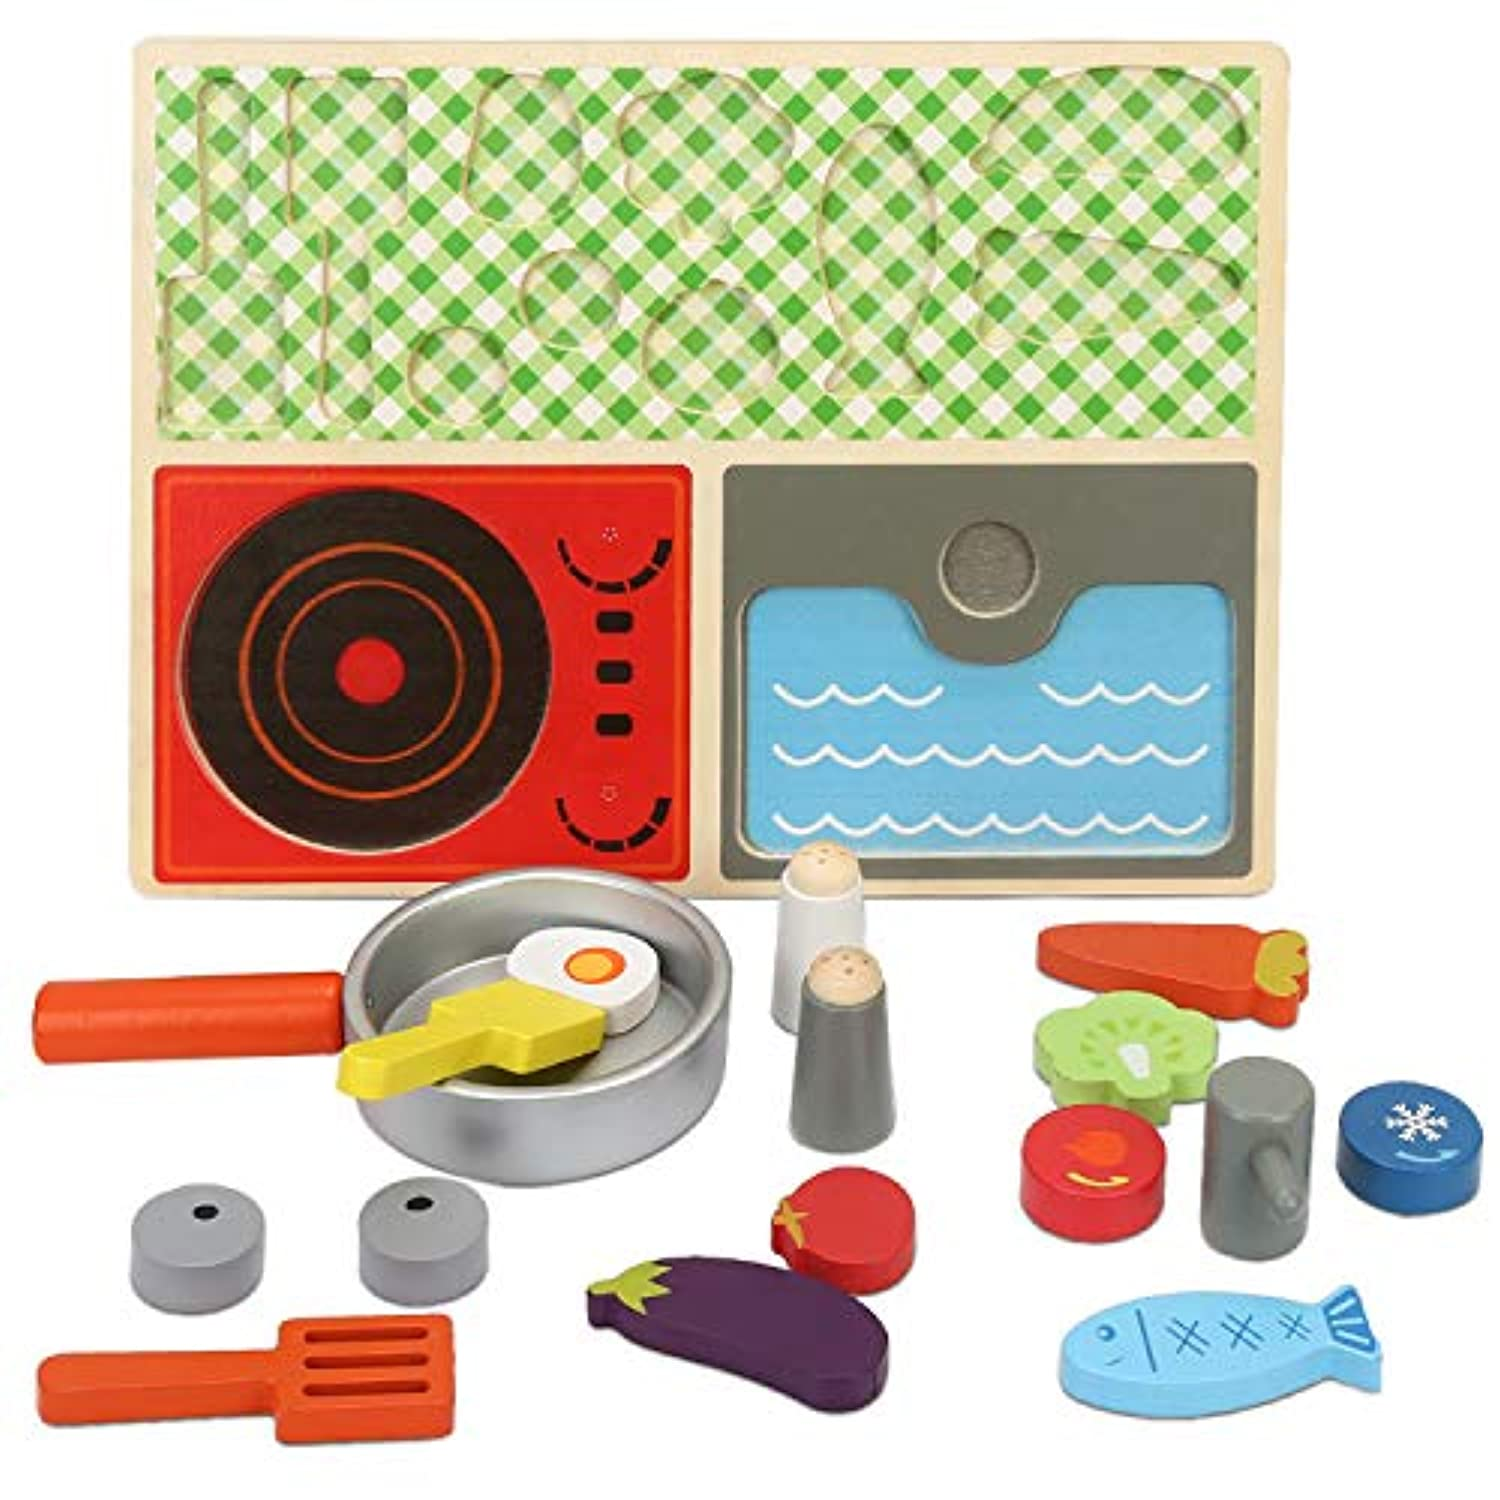 (cook set) - Amagoing Baby Pretend Play Wooden Food Kitchen Cooking Toy Set, Educational Toy